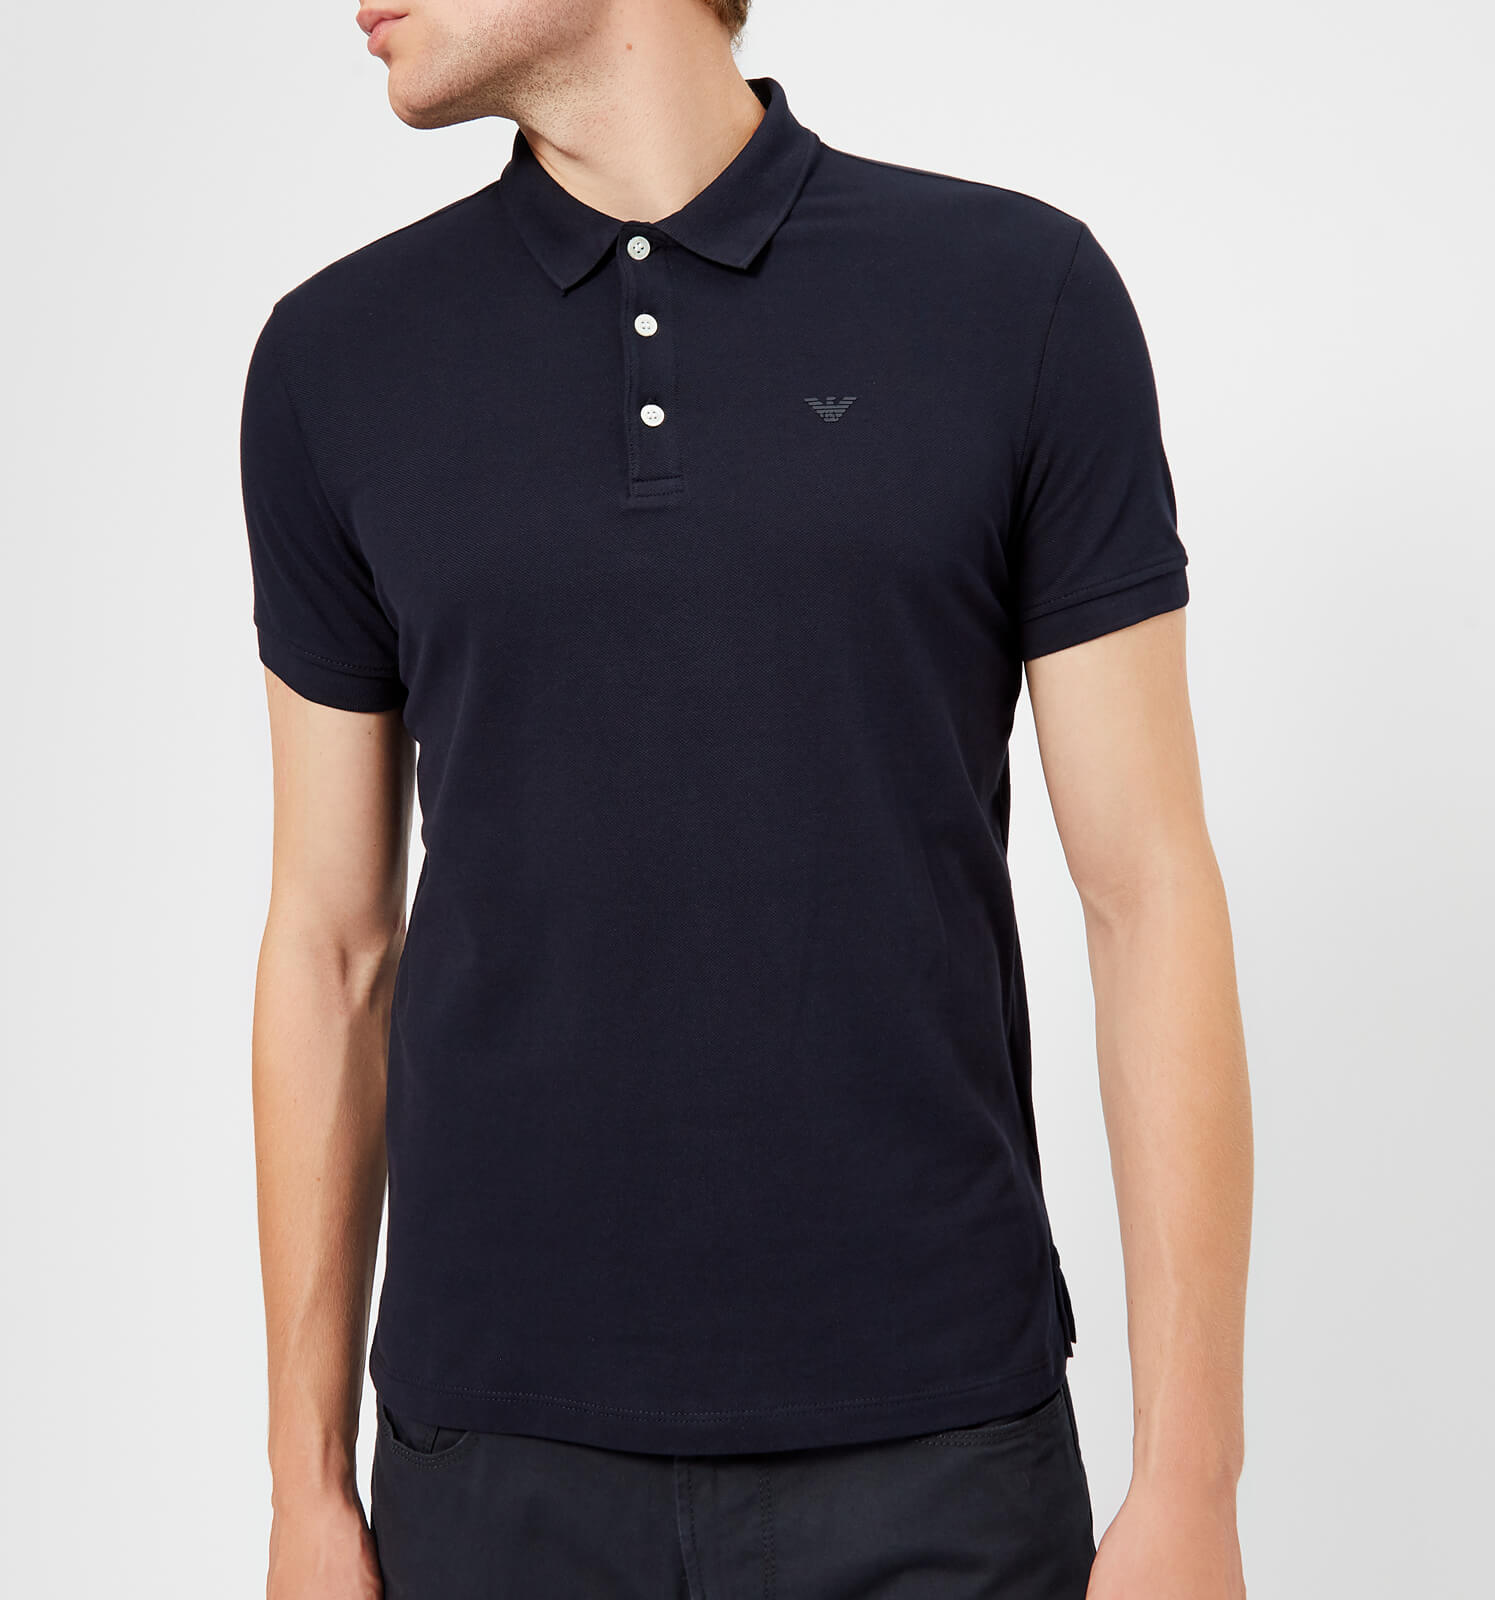 04c27863d029 Emporio Armani Men's Basic Regular Fit Polo Shirt - Navy - Free UK Delivery  over £50